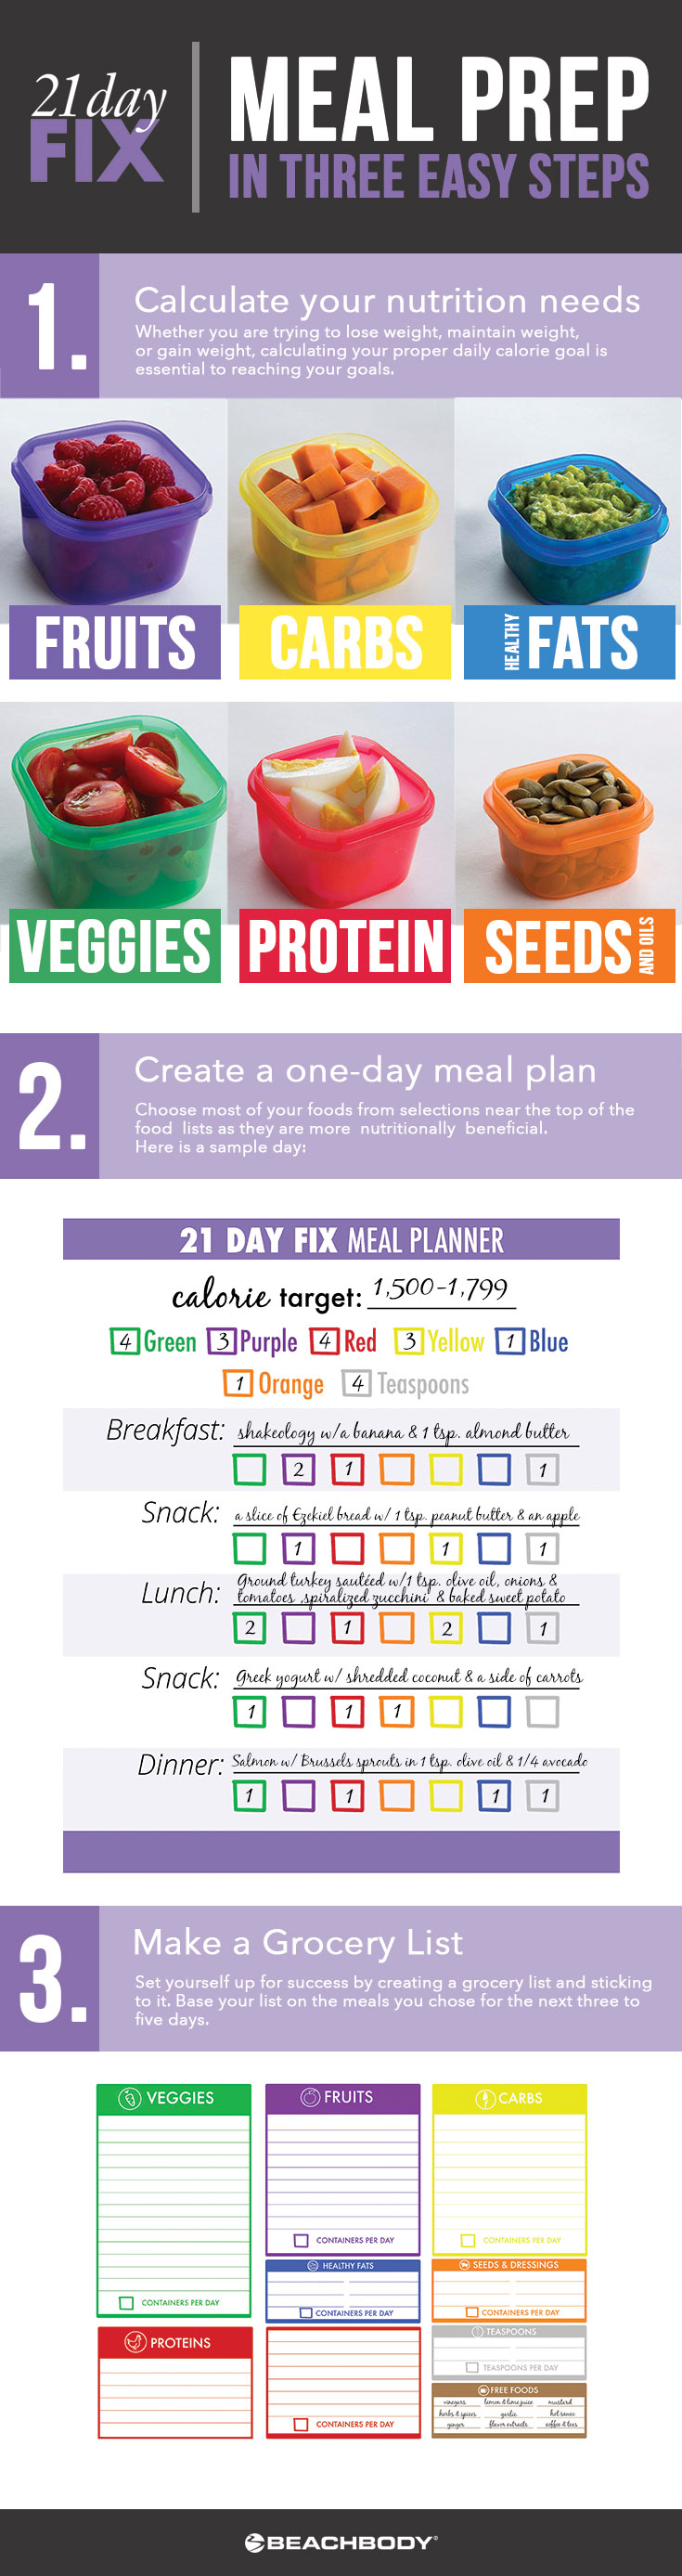 3 steps for successful 21 day fix meal planning the beachbody blog youre excited to start the 21 day fix but whats the first step nvjuhfo Image collections